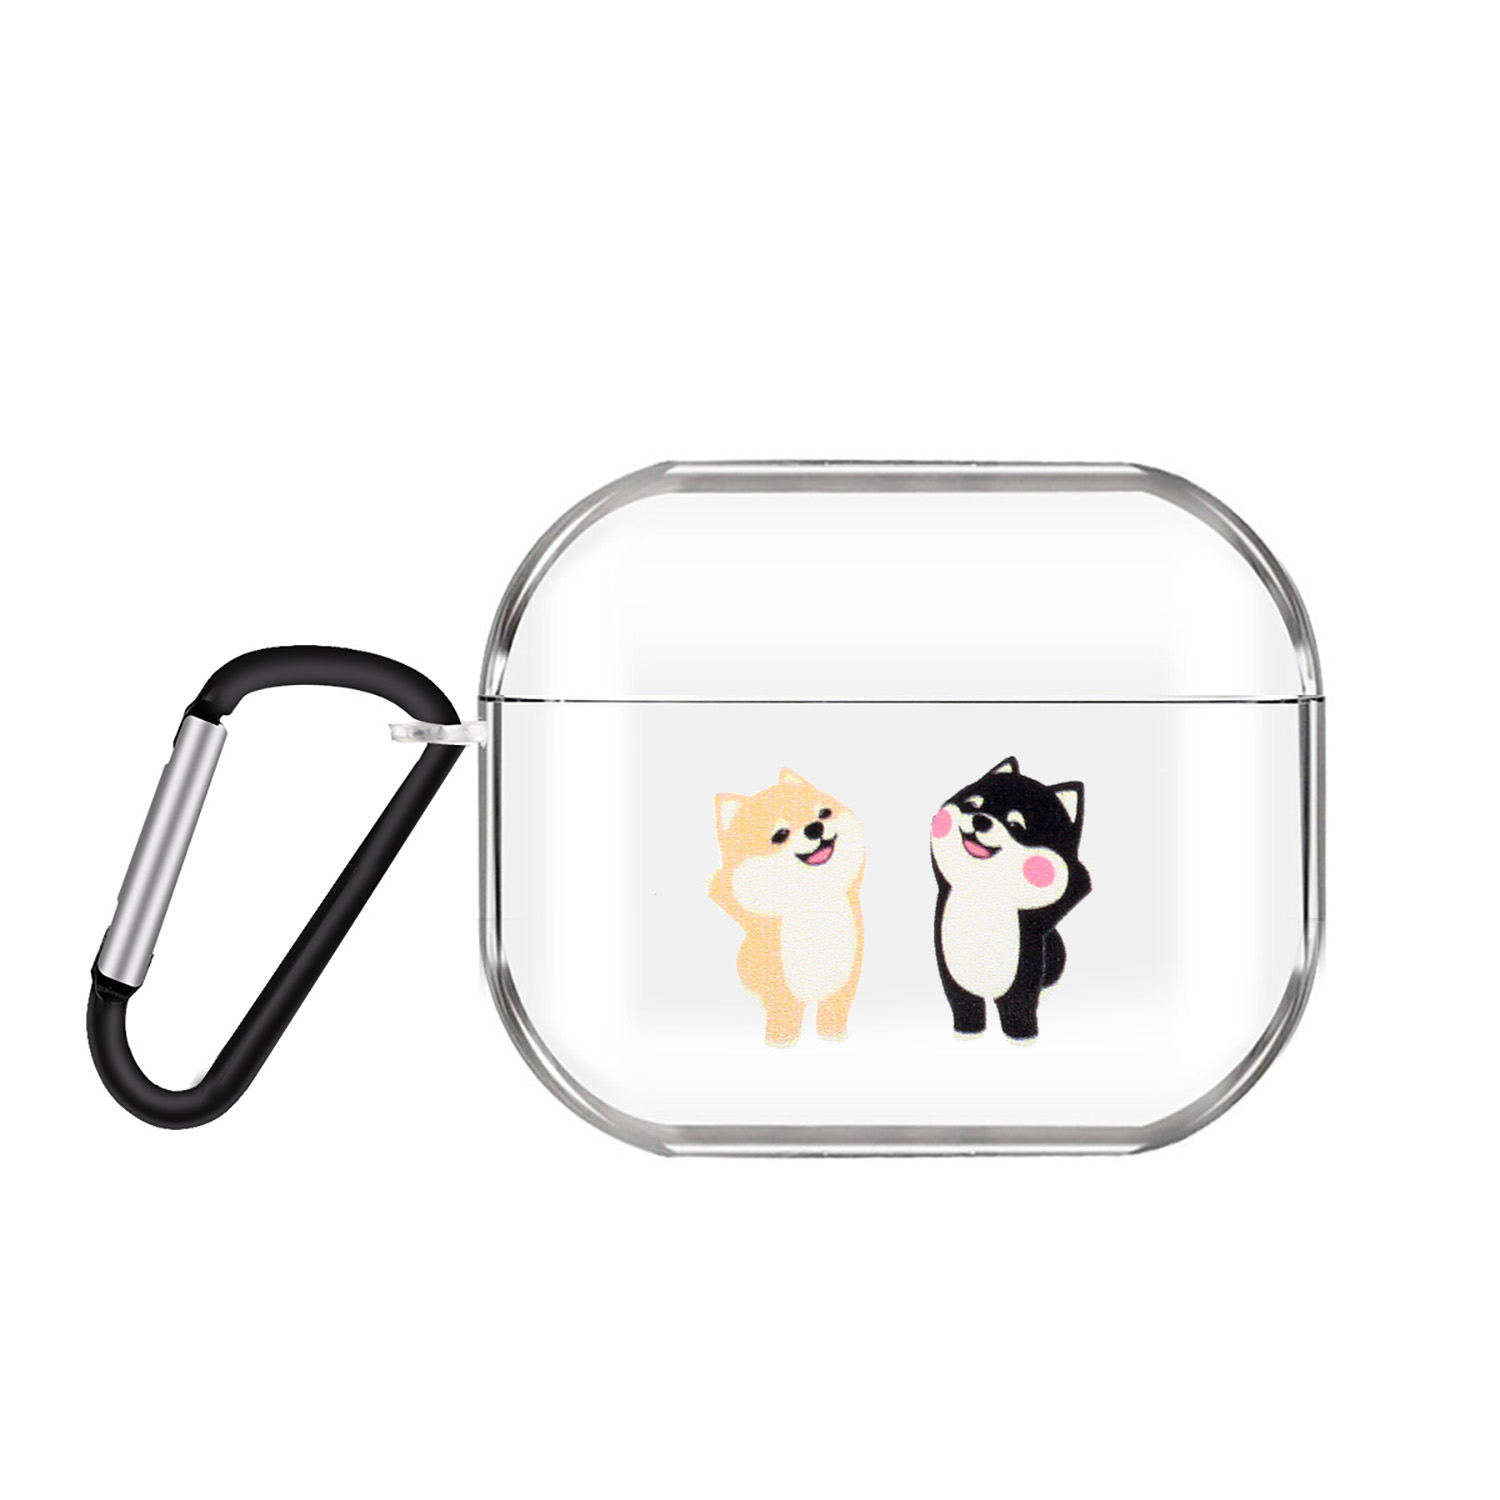 For AirPods Pro Headphones Case Cartoon Clear Earphone Shell with Metal Hook Full Protection Cover 15 cats